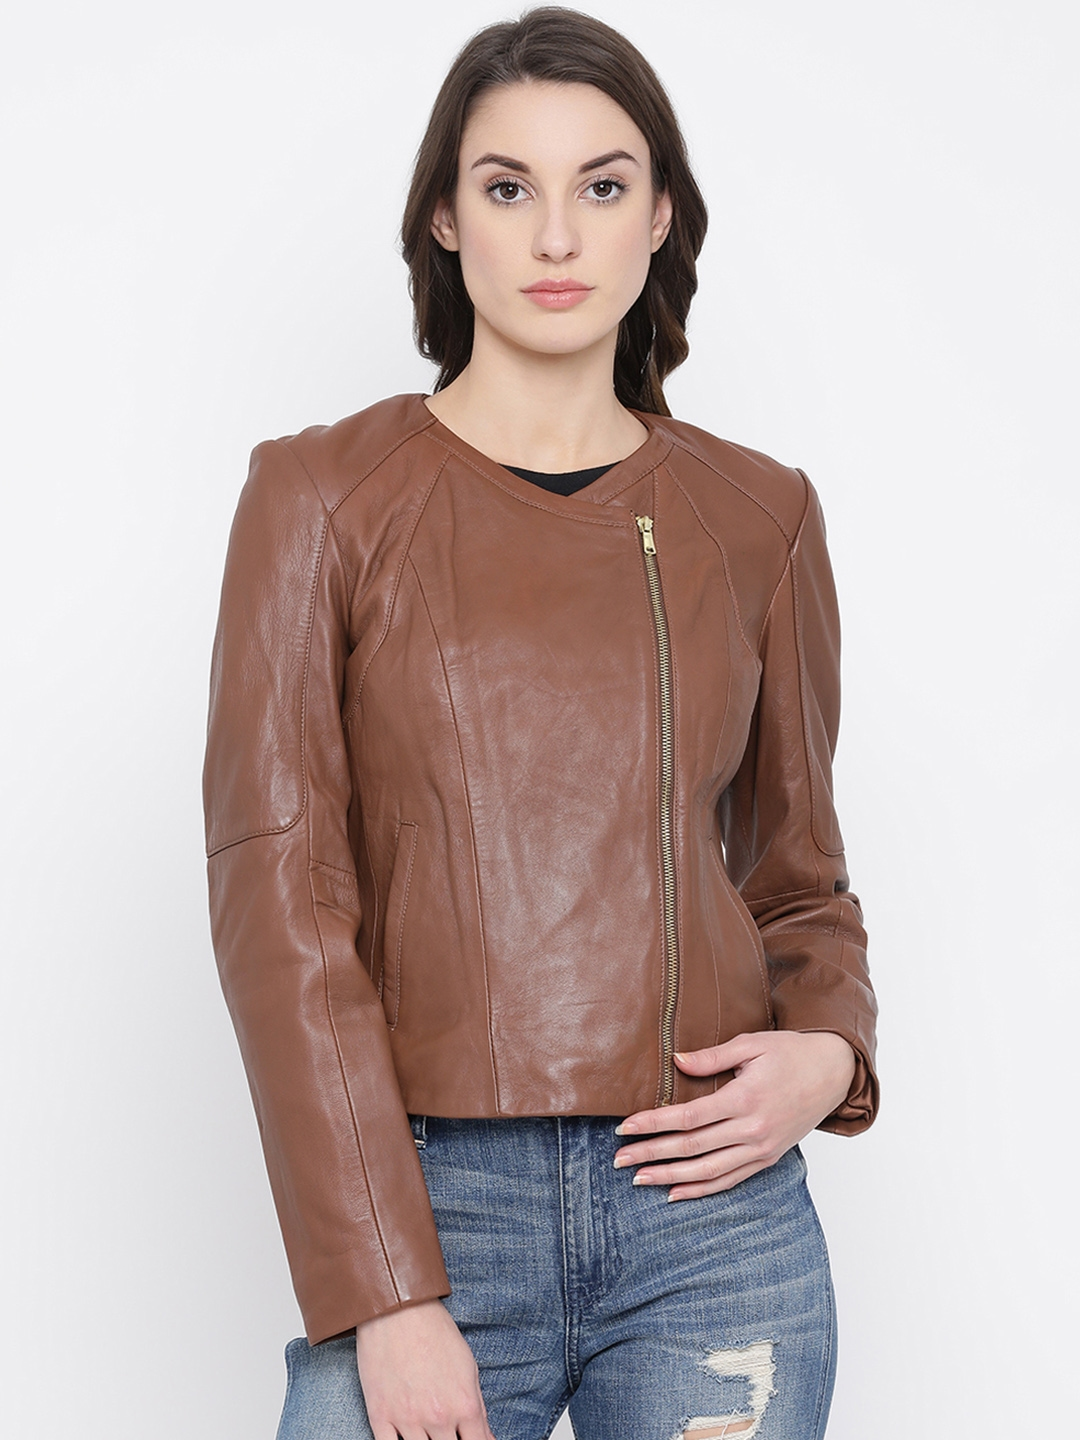 Justanned Women Tan Brown Solid Leather Jacket